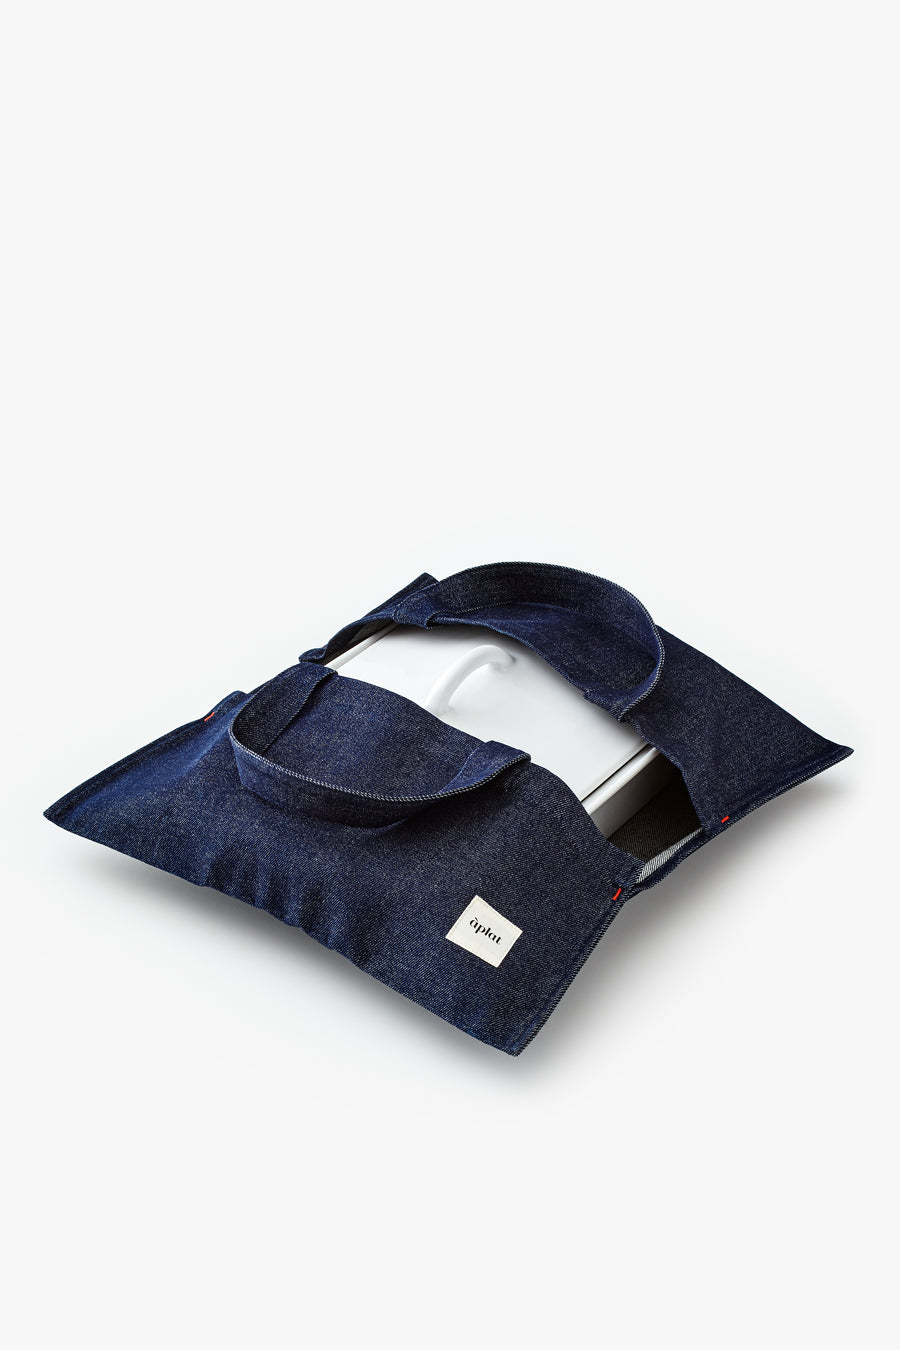 Plat Culinary Wide Tote | Denim